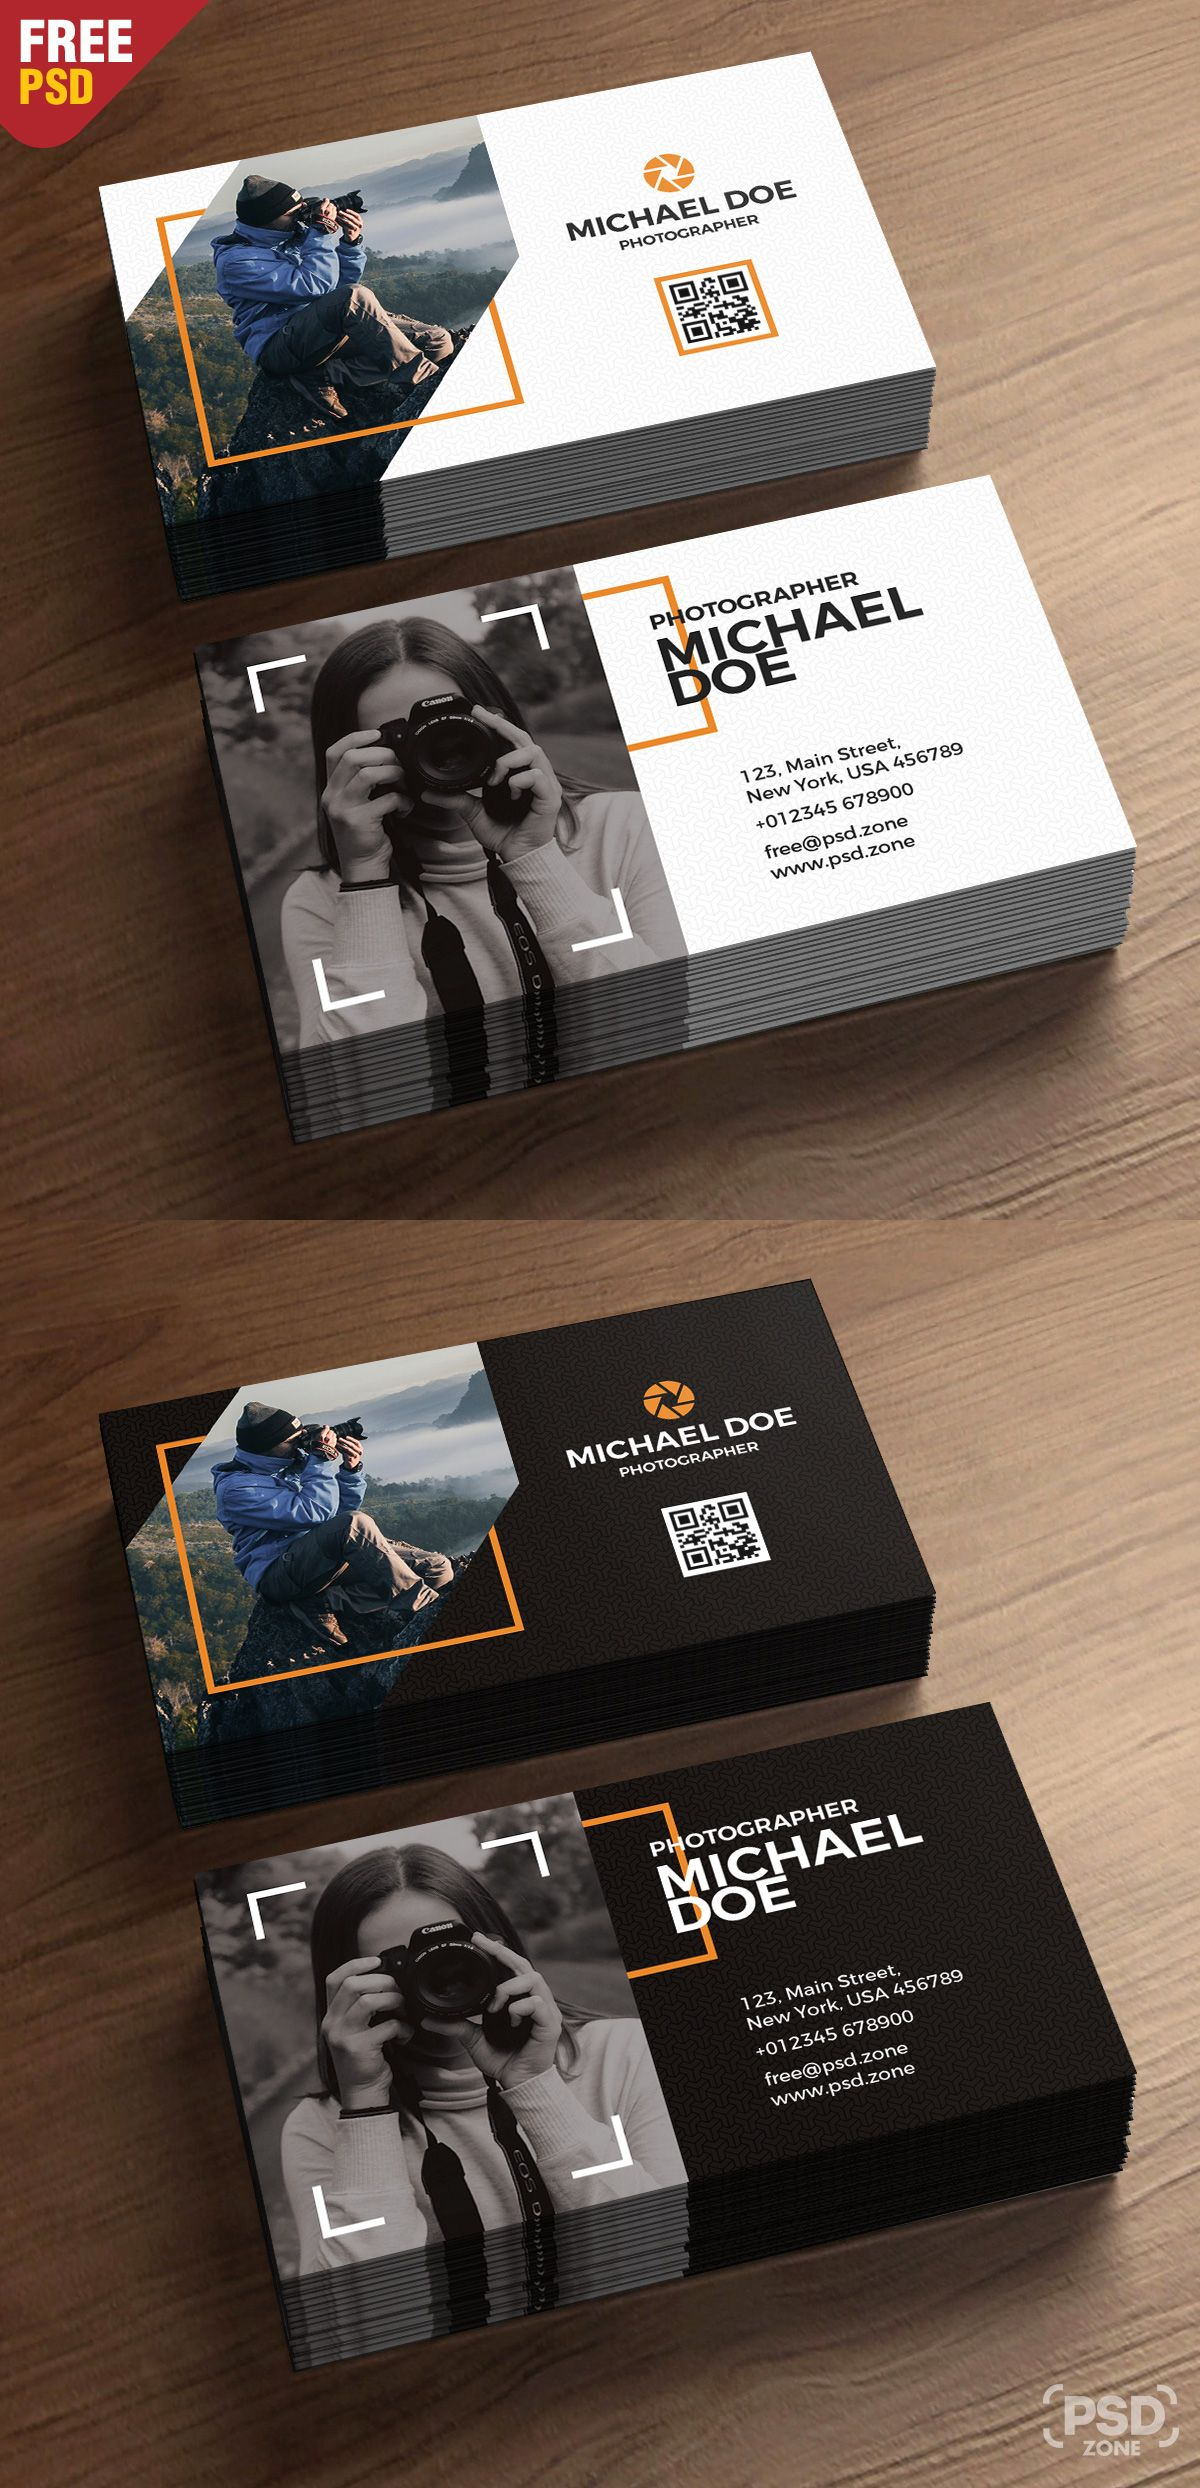 Photography Business Cards Template Psd Psd Zone Business Cards Creative Photography Business Cards Template Graphic Design Business Card